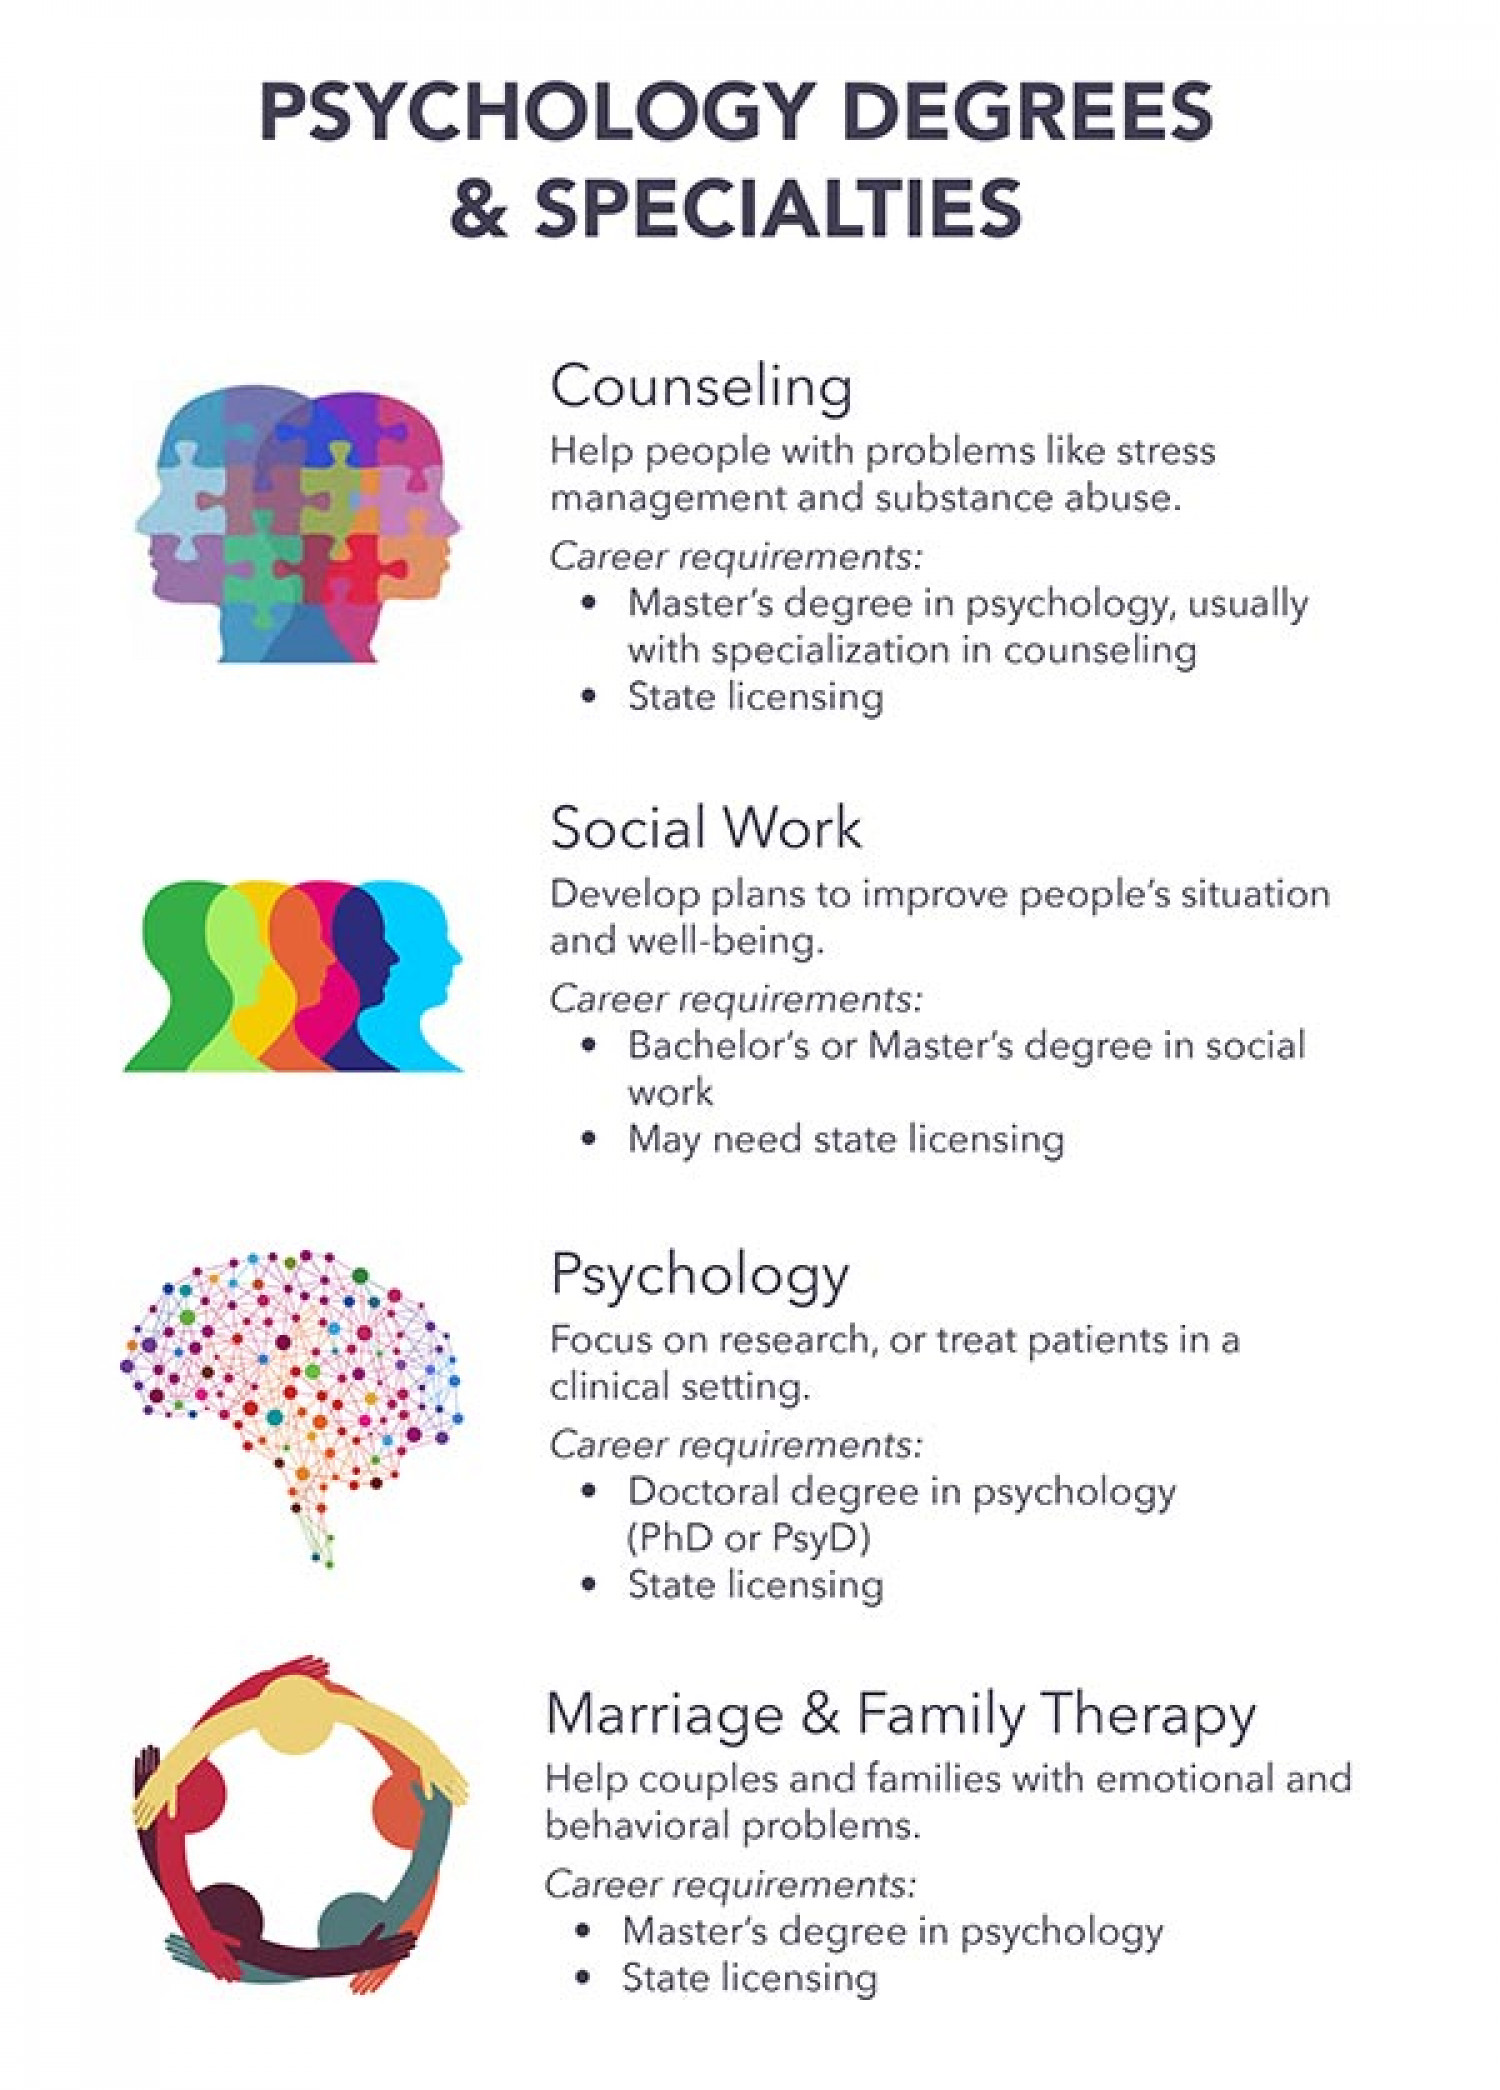 Psychology Careers & Degree Specialties Infographic